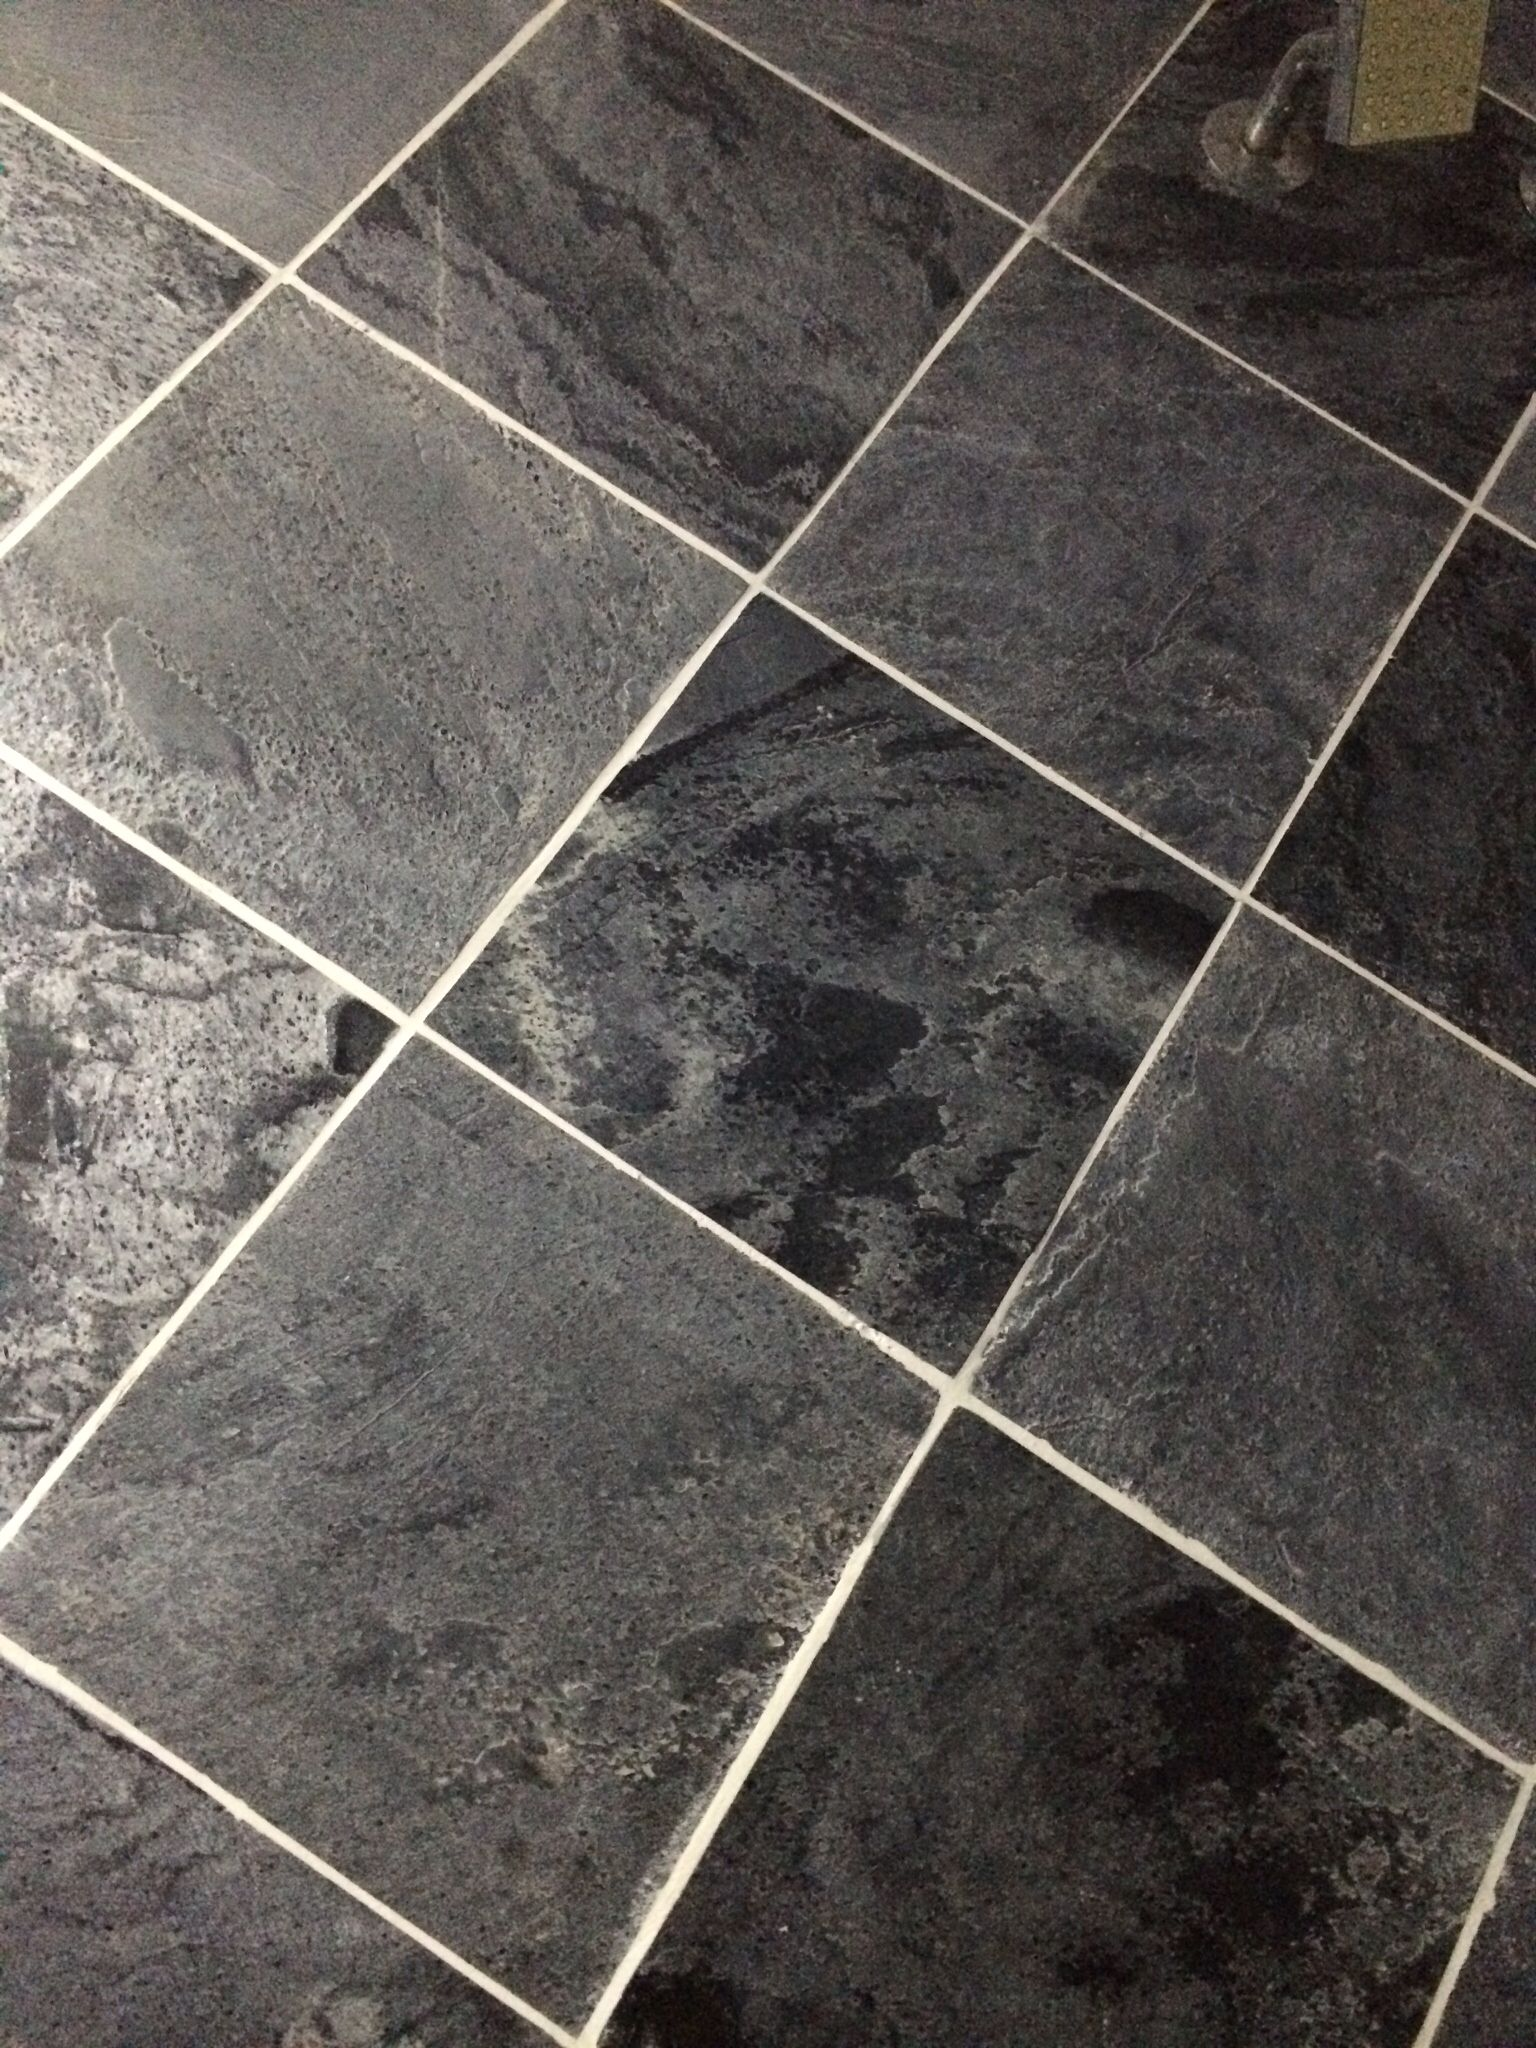 Silver grey quartzite wall tiles for your bathroom wall bathroom silver grey quartzite wall tiles for your bathroom wall dailygadgetfo Choice Image